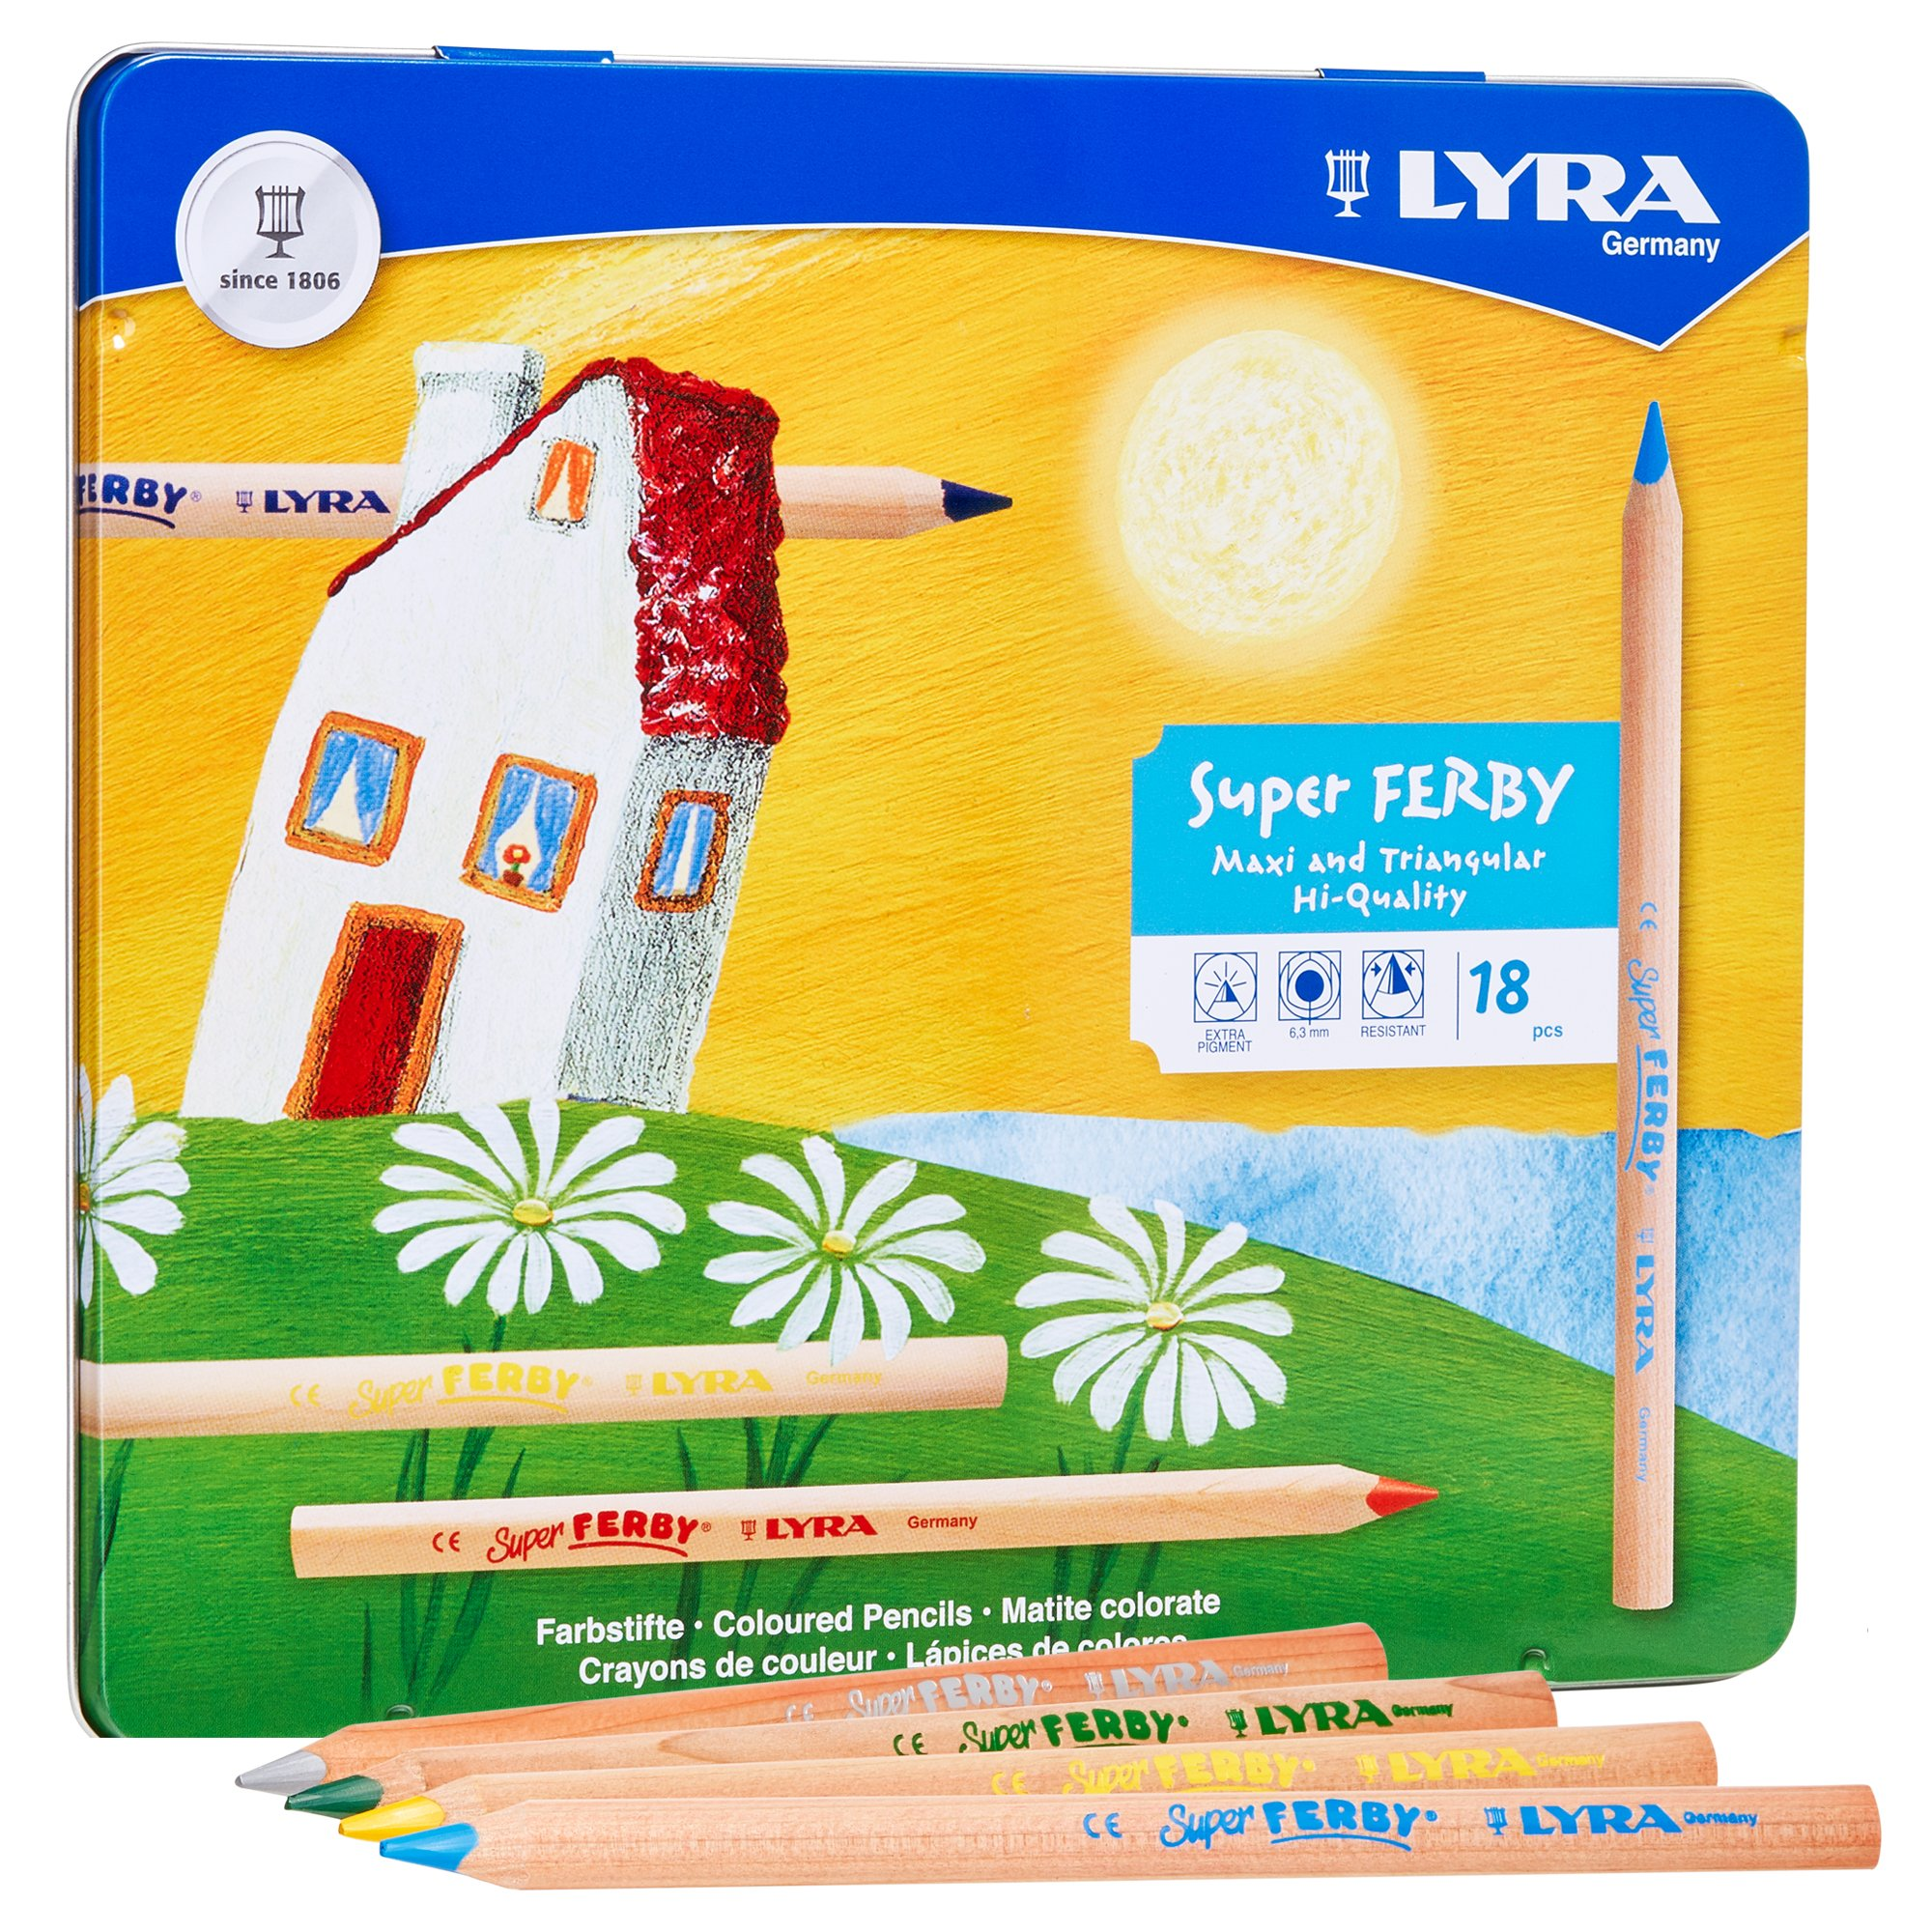 LYRA Super Ferby Giant Triangular Colored Pencil, Unlacquered, 6.25 Millimeter Cores, Assorted Colors, 18-Pack (3711180) by Lyra (Image #2)